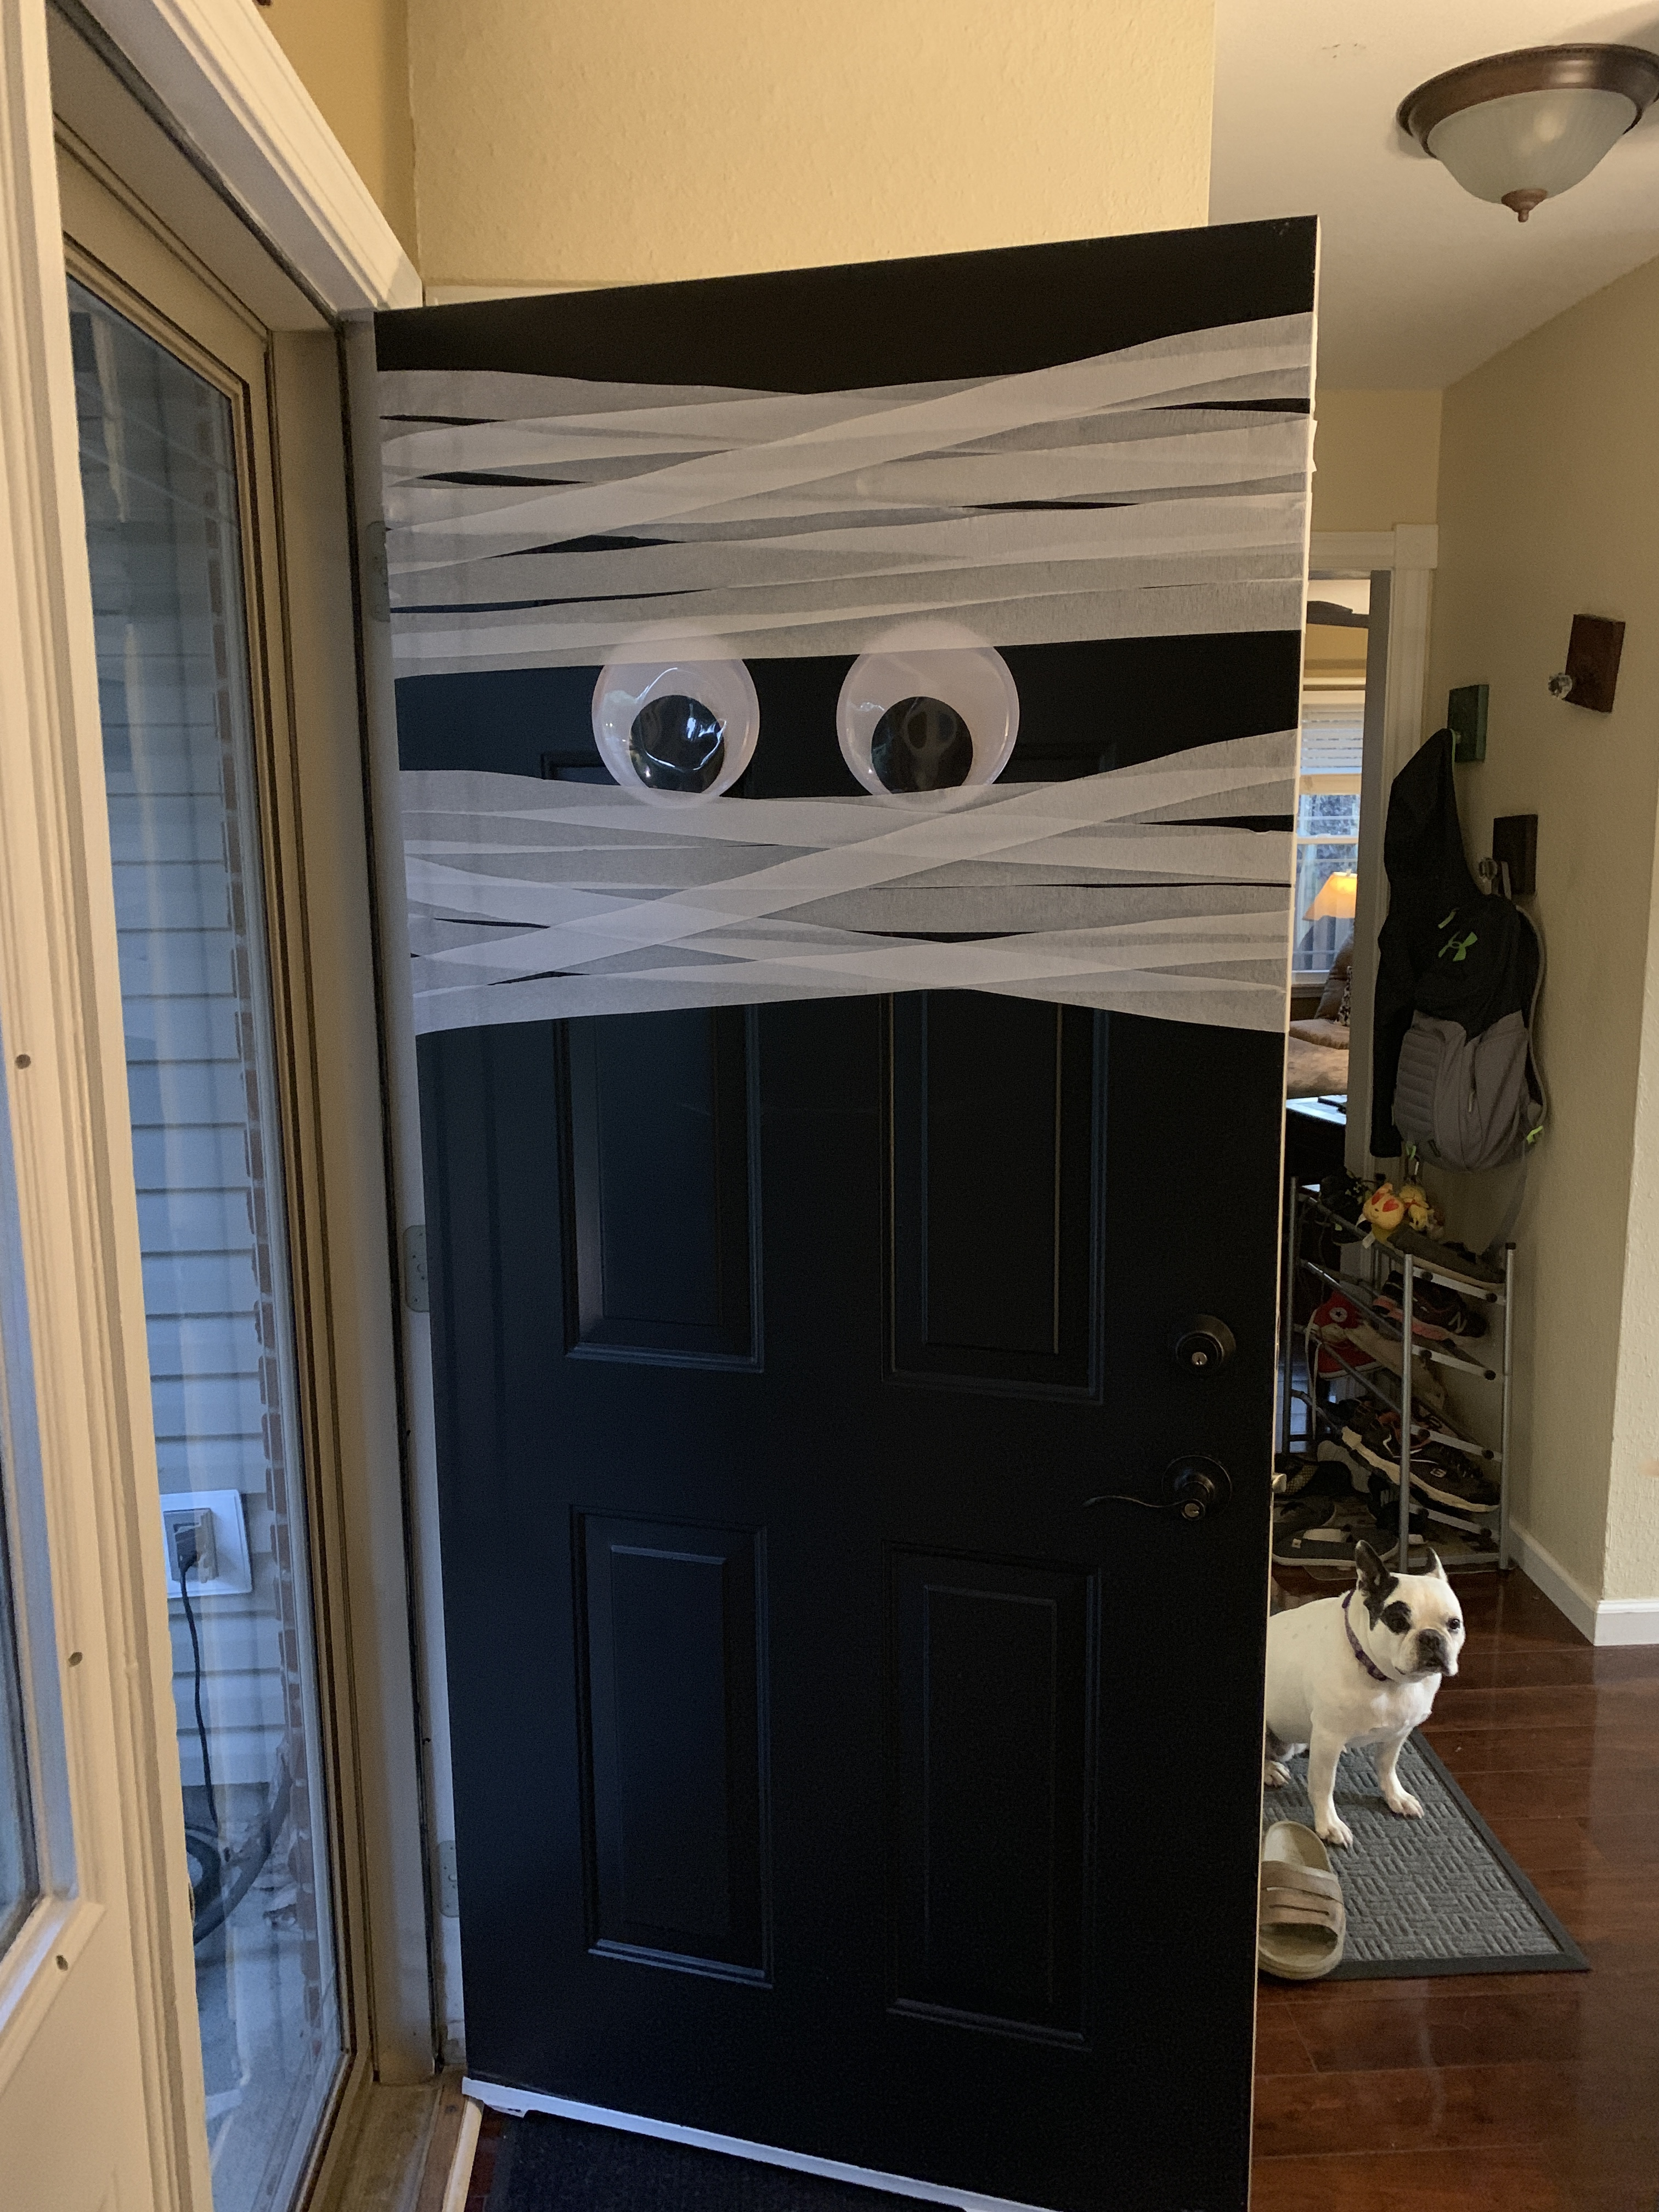 Beginning of the Mummy Door